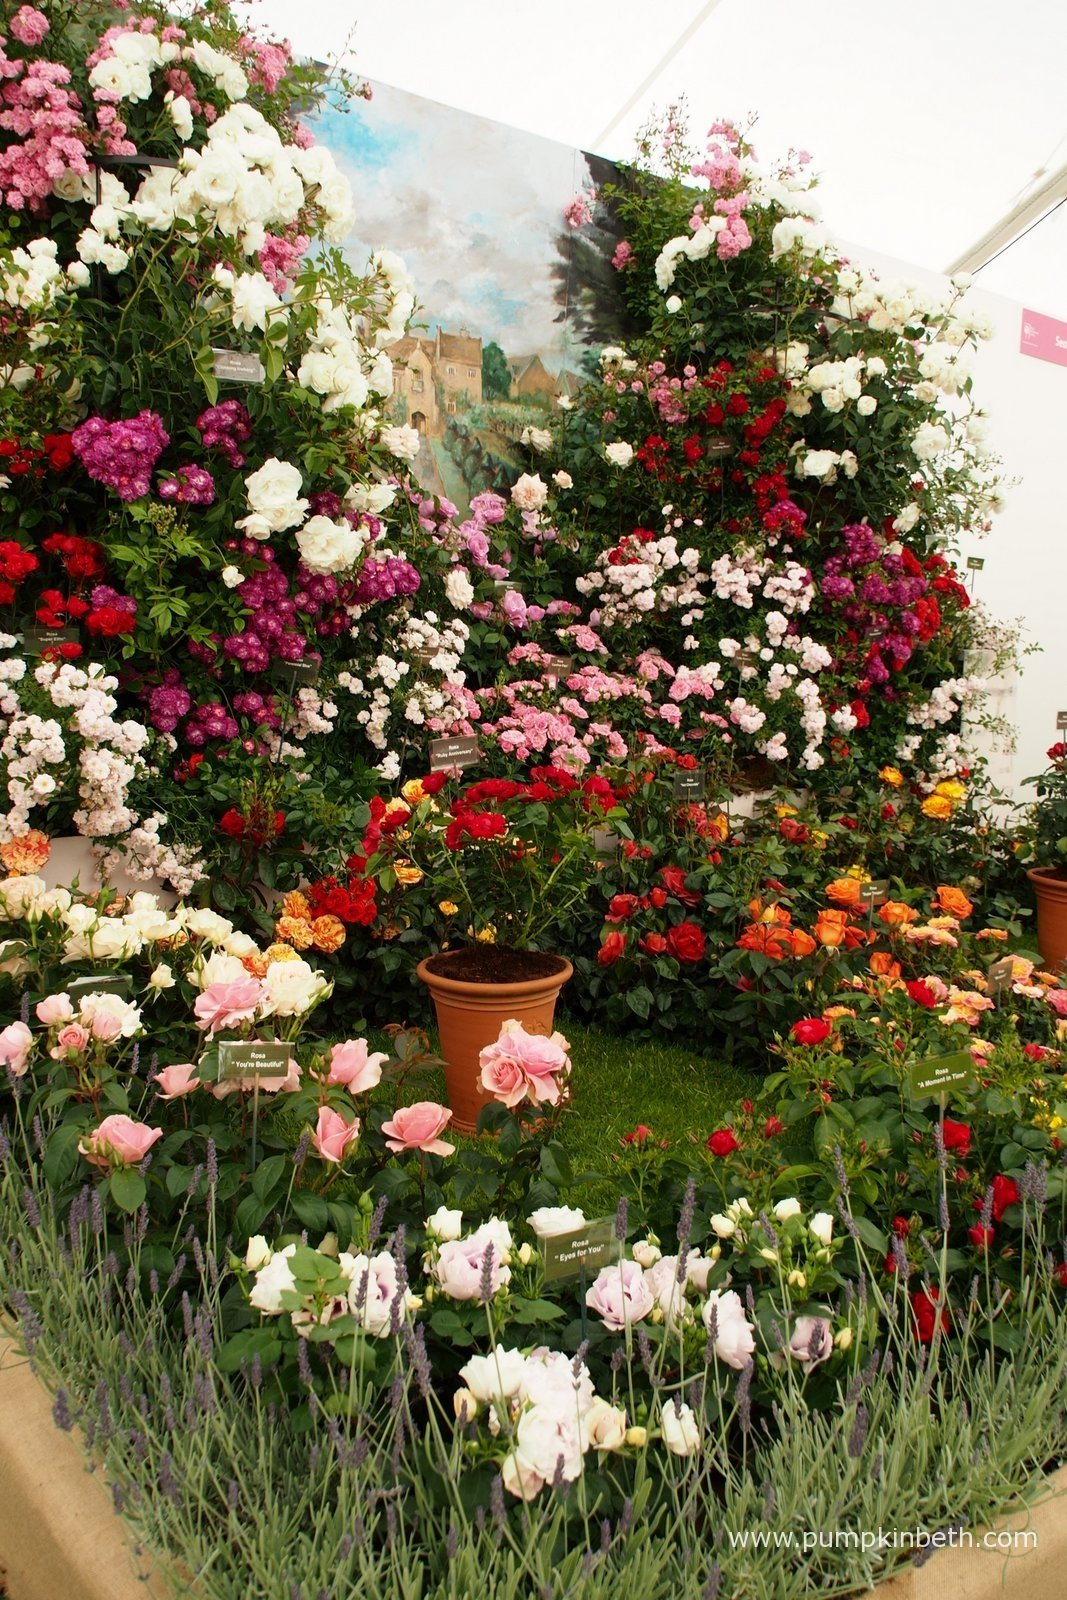 The festival of roses at the rhs hampton court palace - Hampton court flower show ...